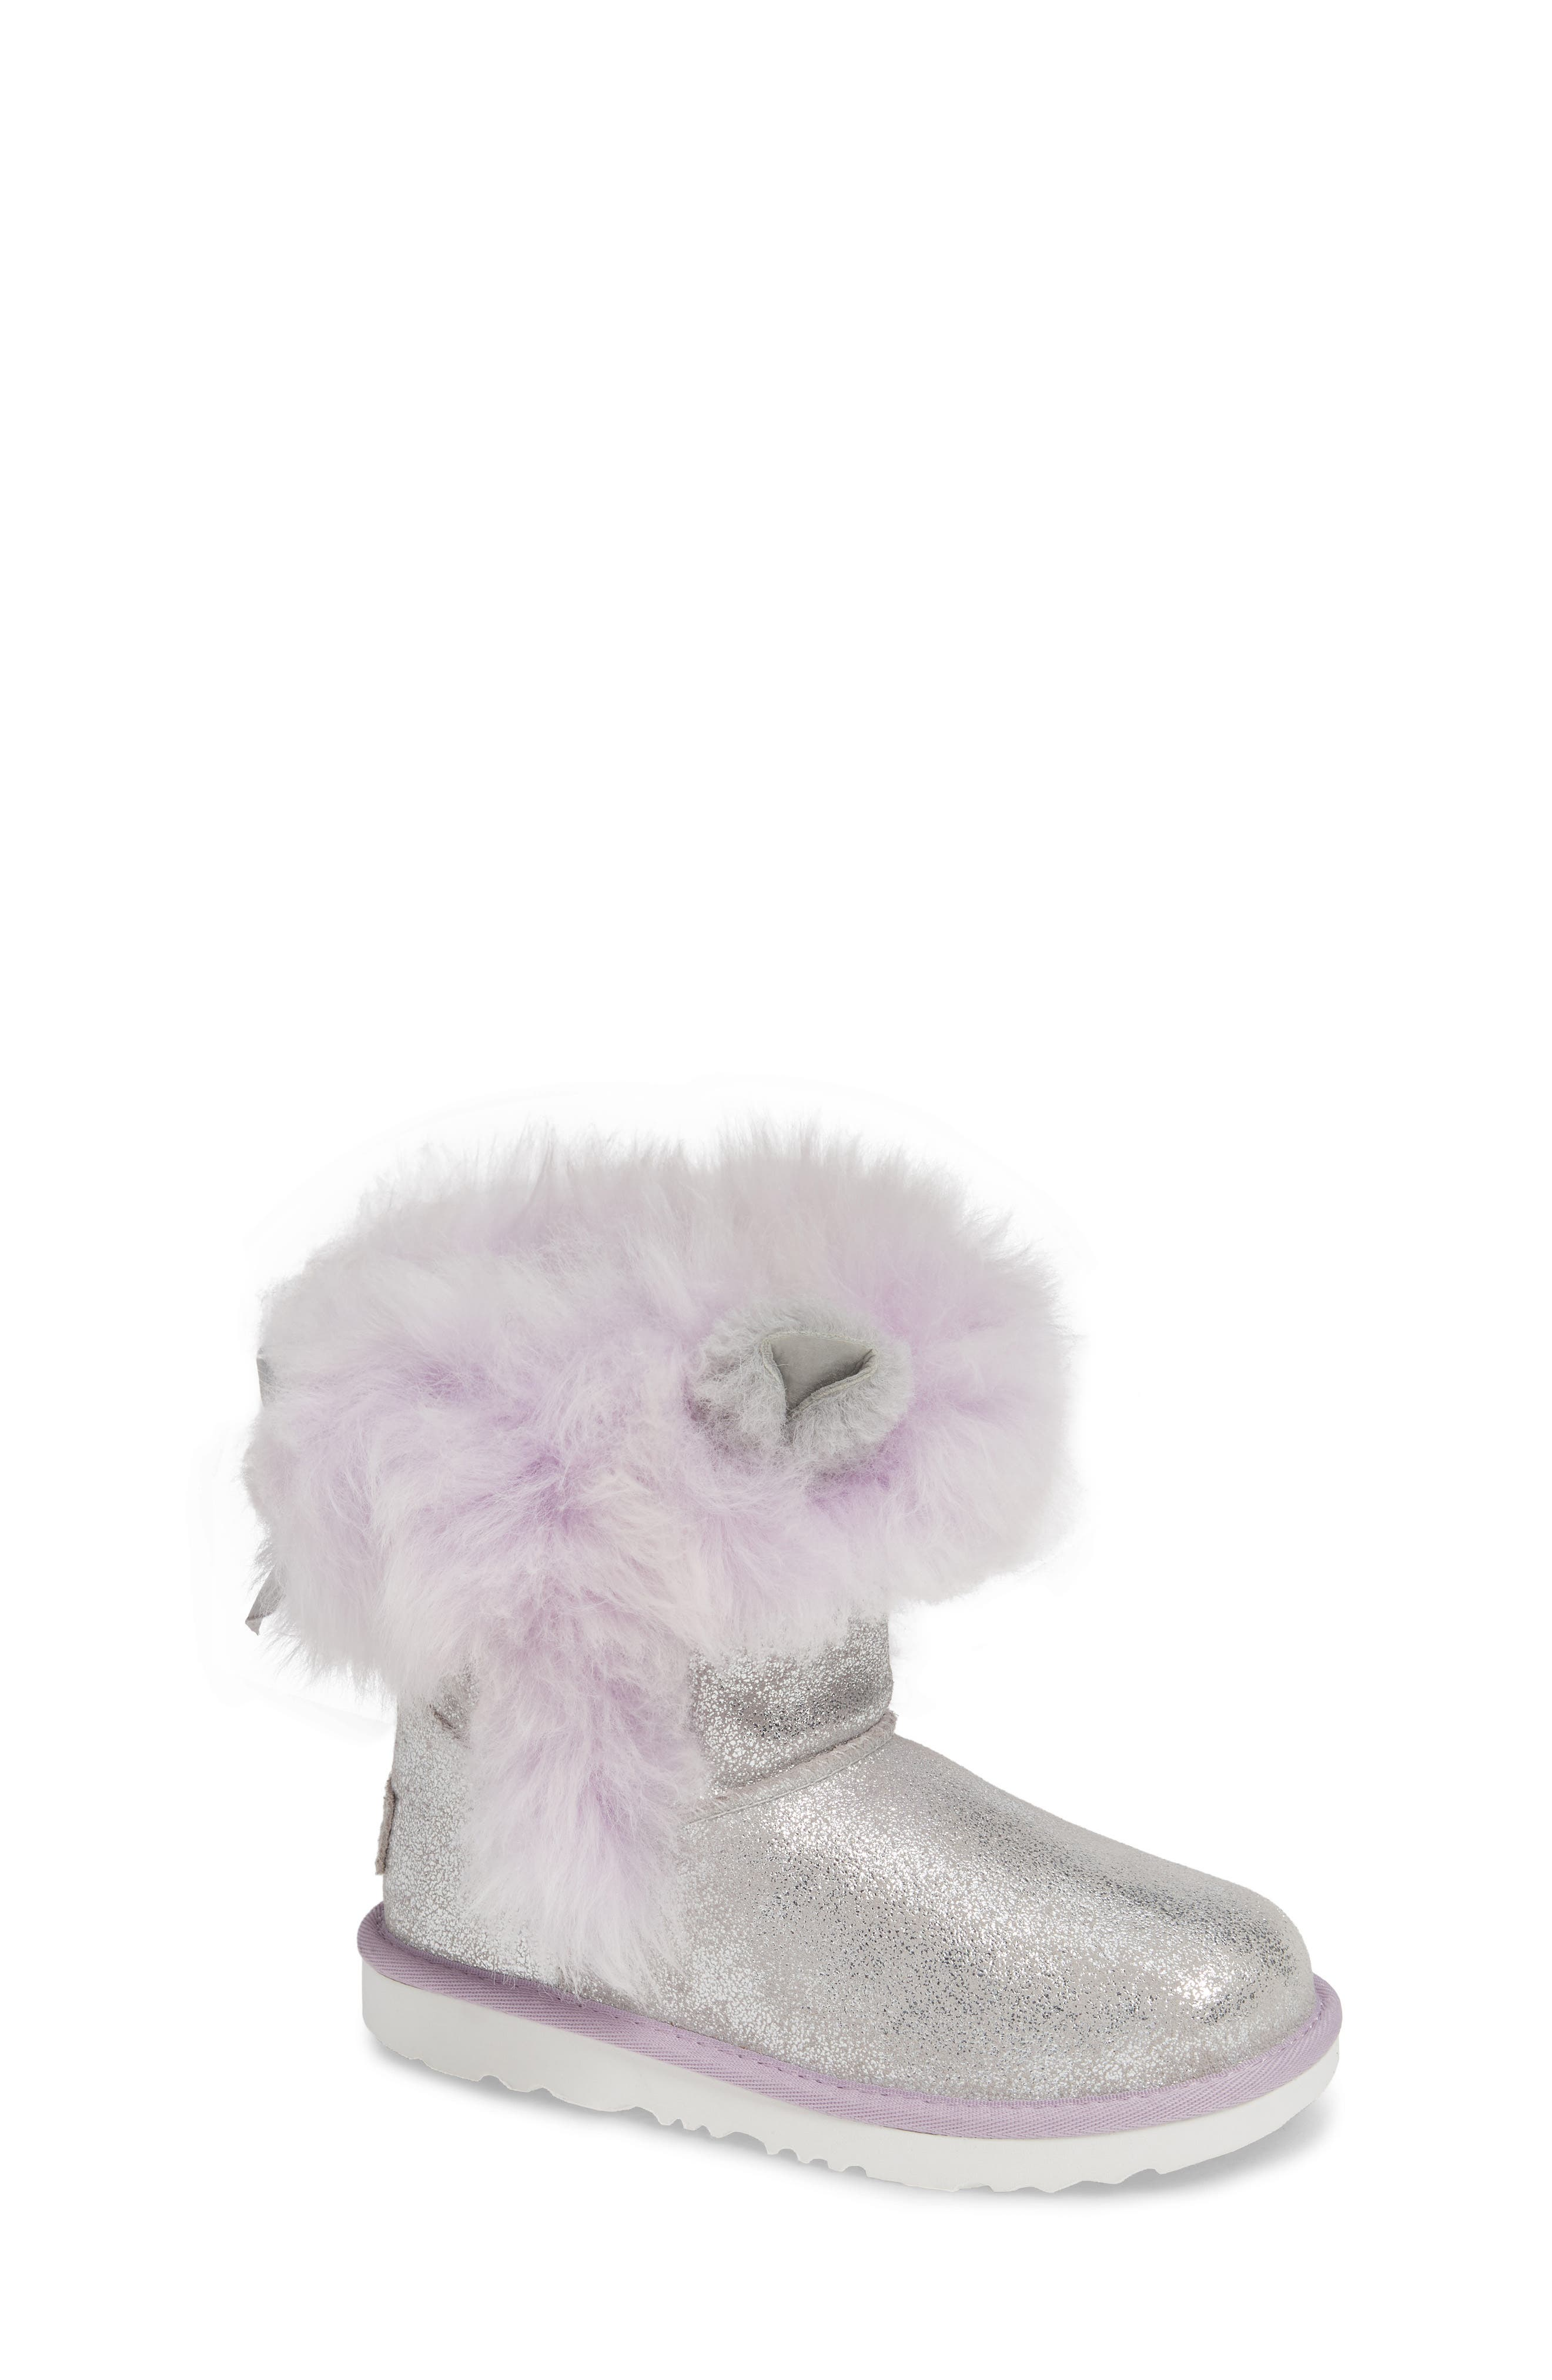 Maizey Classic Genuine Shearling Glitter Boot,                             Main thumbnail 1, color,                             SILVER / LAVENDER